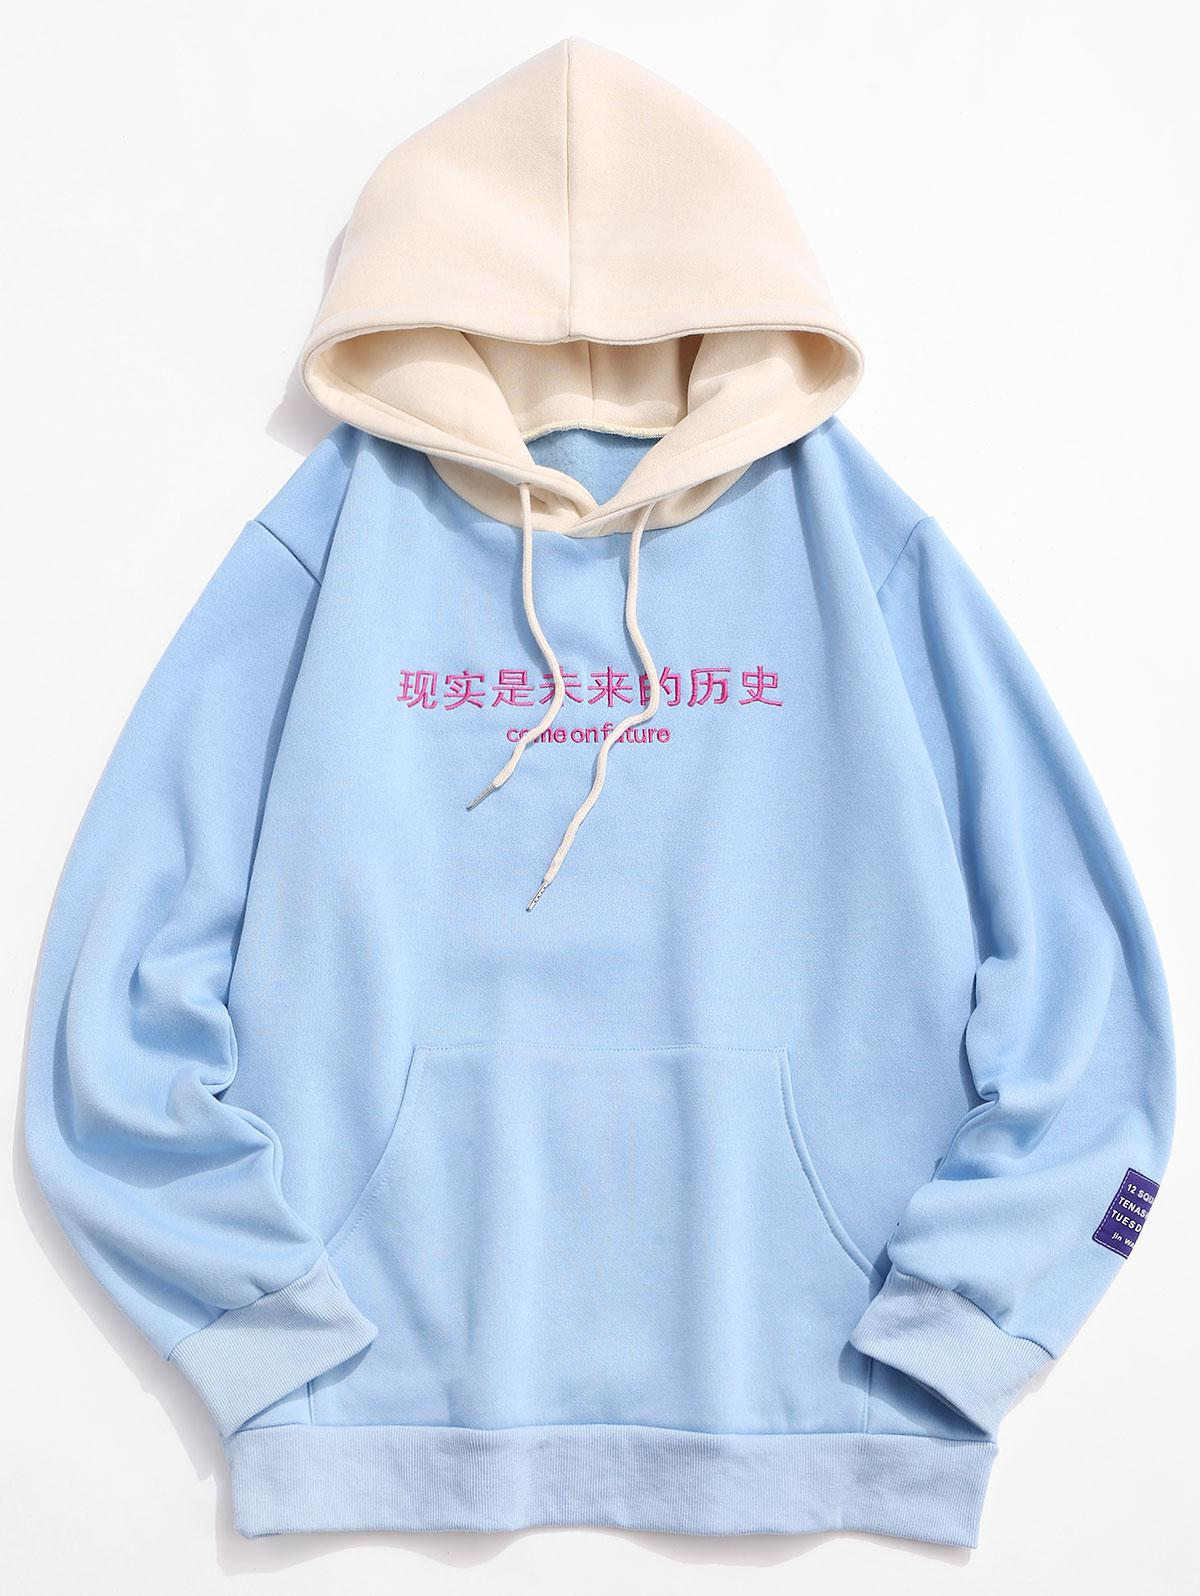 Come on Future Letter Embroidery Colorblock Spliced Hoodie фото